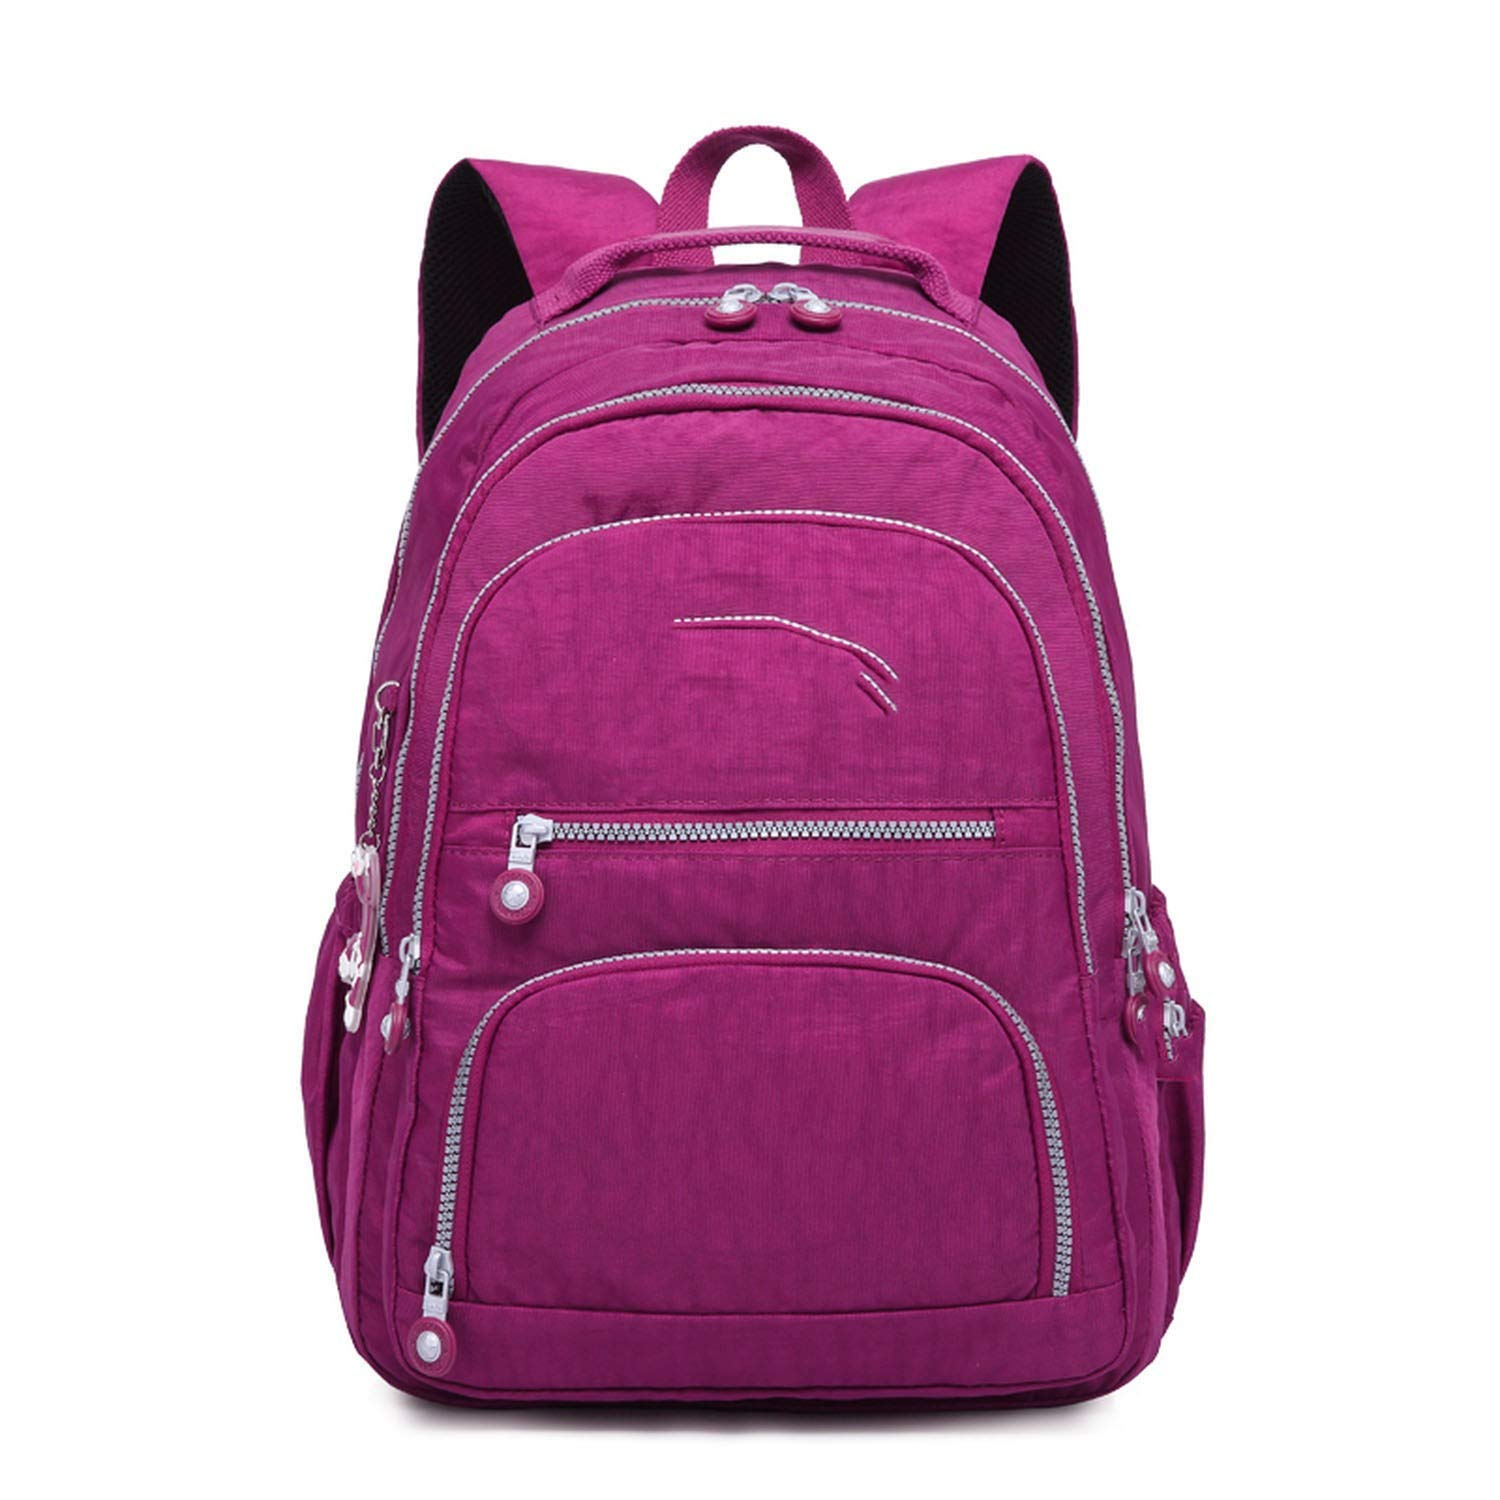 Amazon.com: Backpacks Women School Backpack for Girls Female Laptop Bagpack Travel Bags Perfect Play Shirts,Purple Perfect Play Shirts,27CMX13CMX37CM 1368: ...